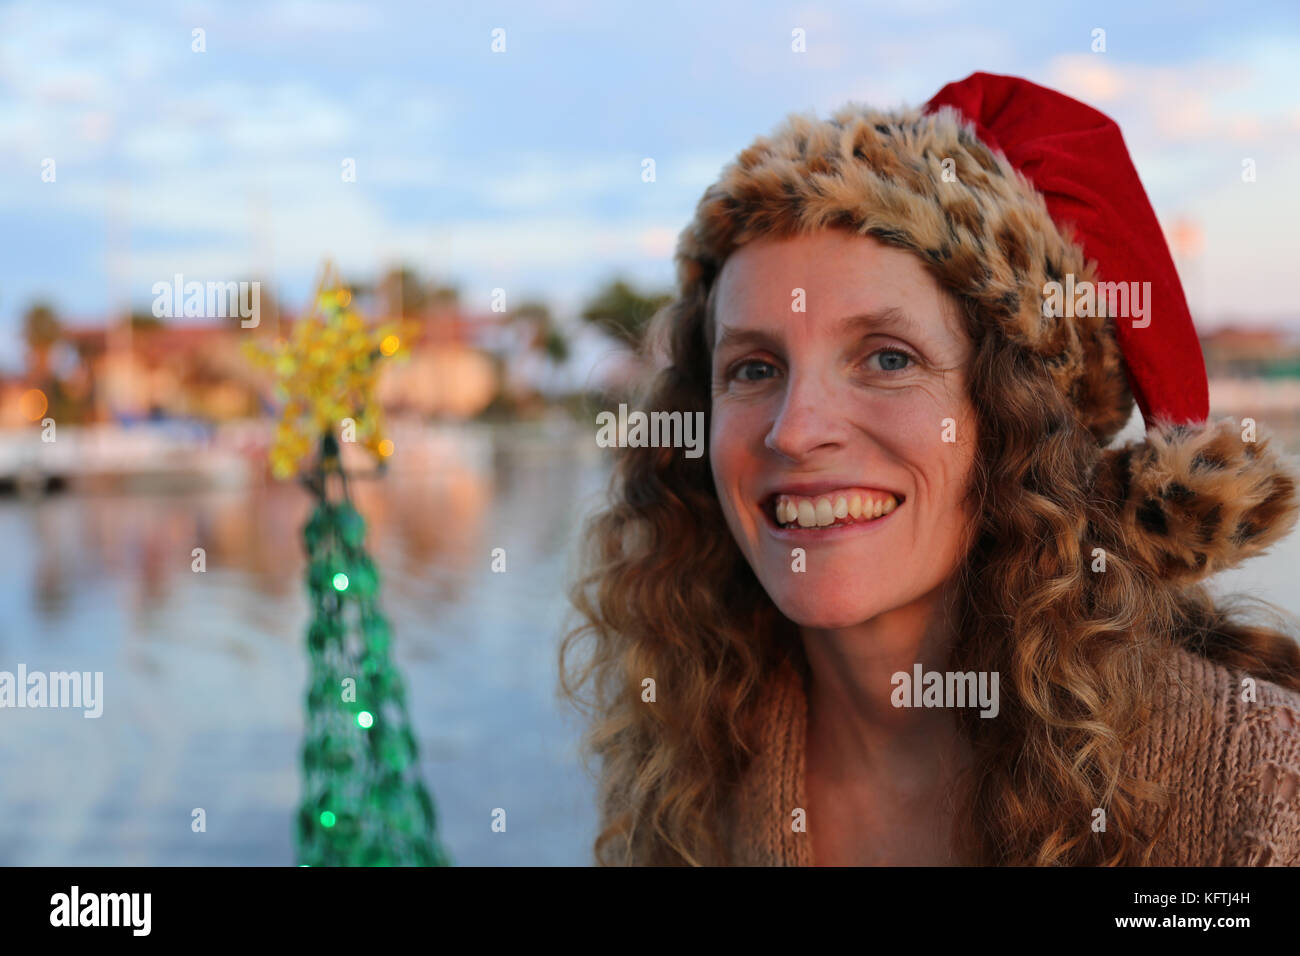 Young lady in a festive holiday Santa hat next to a decorated Christmas tree. - Stock Image